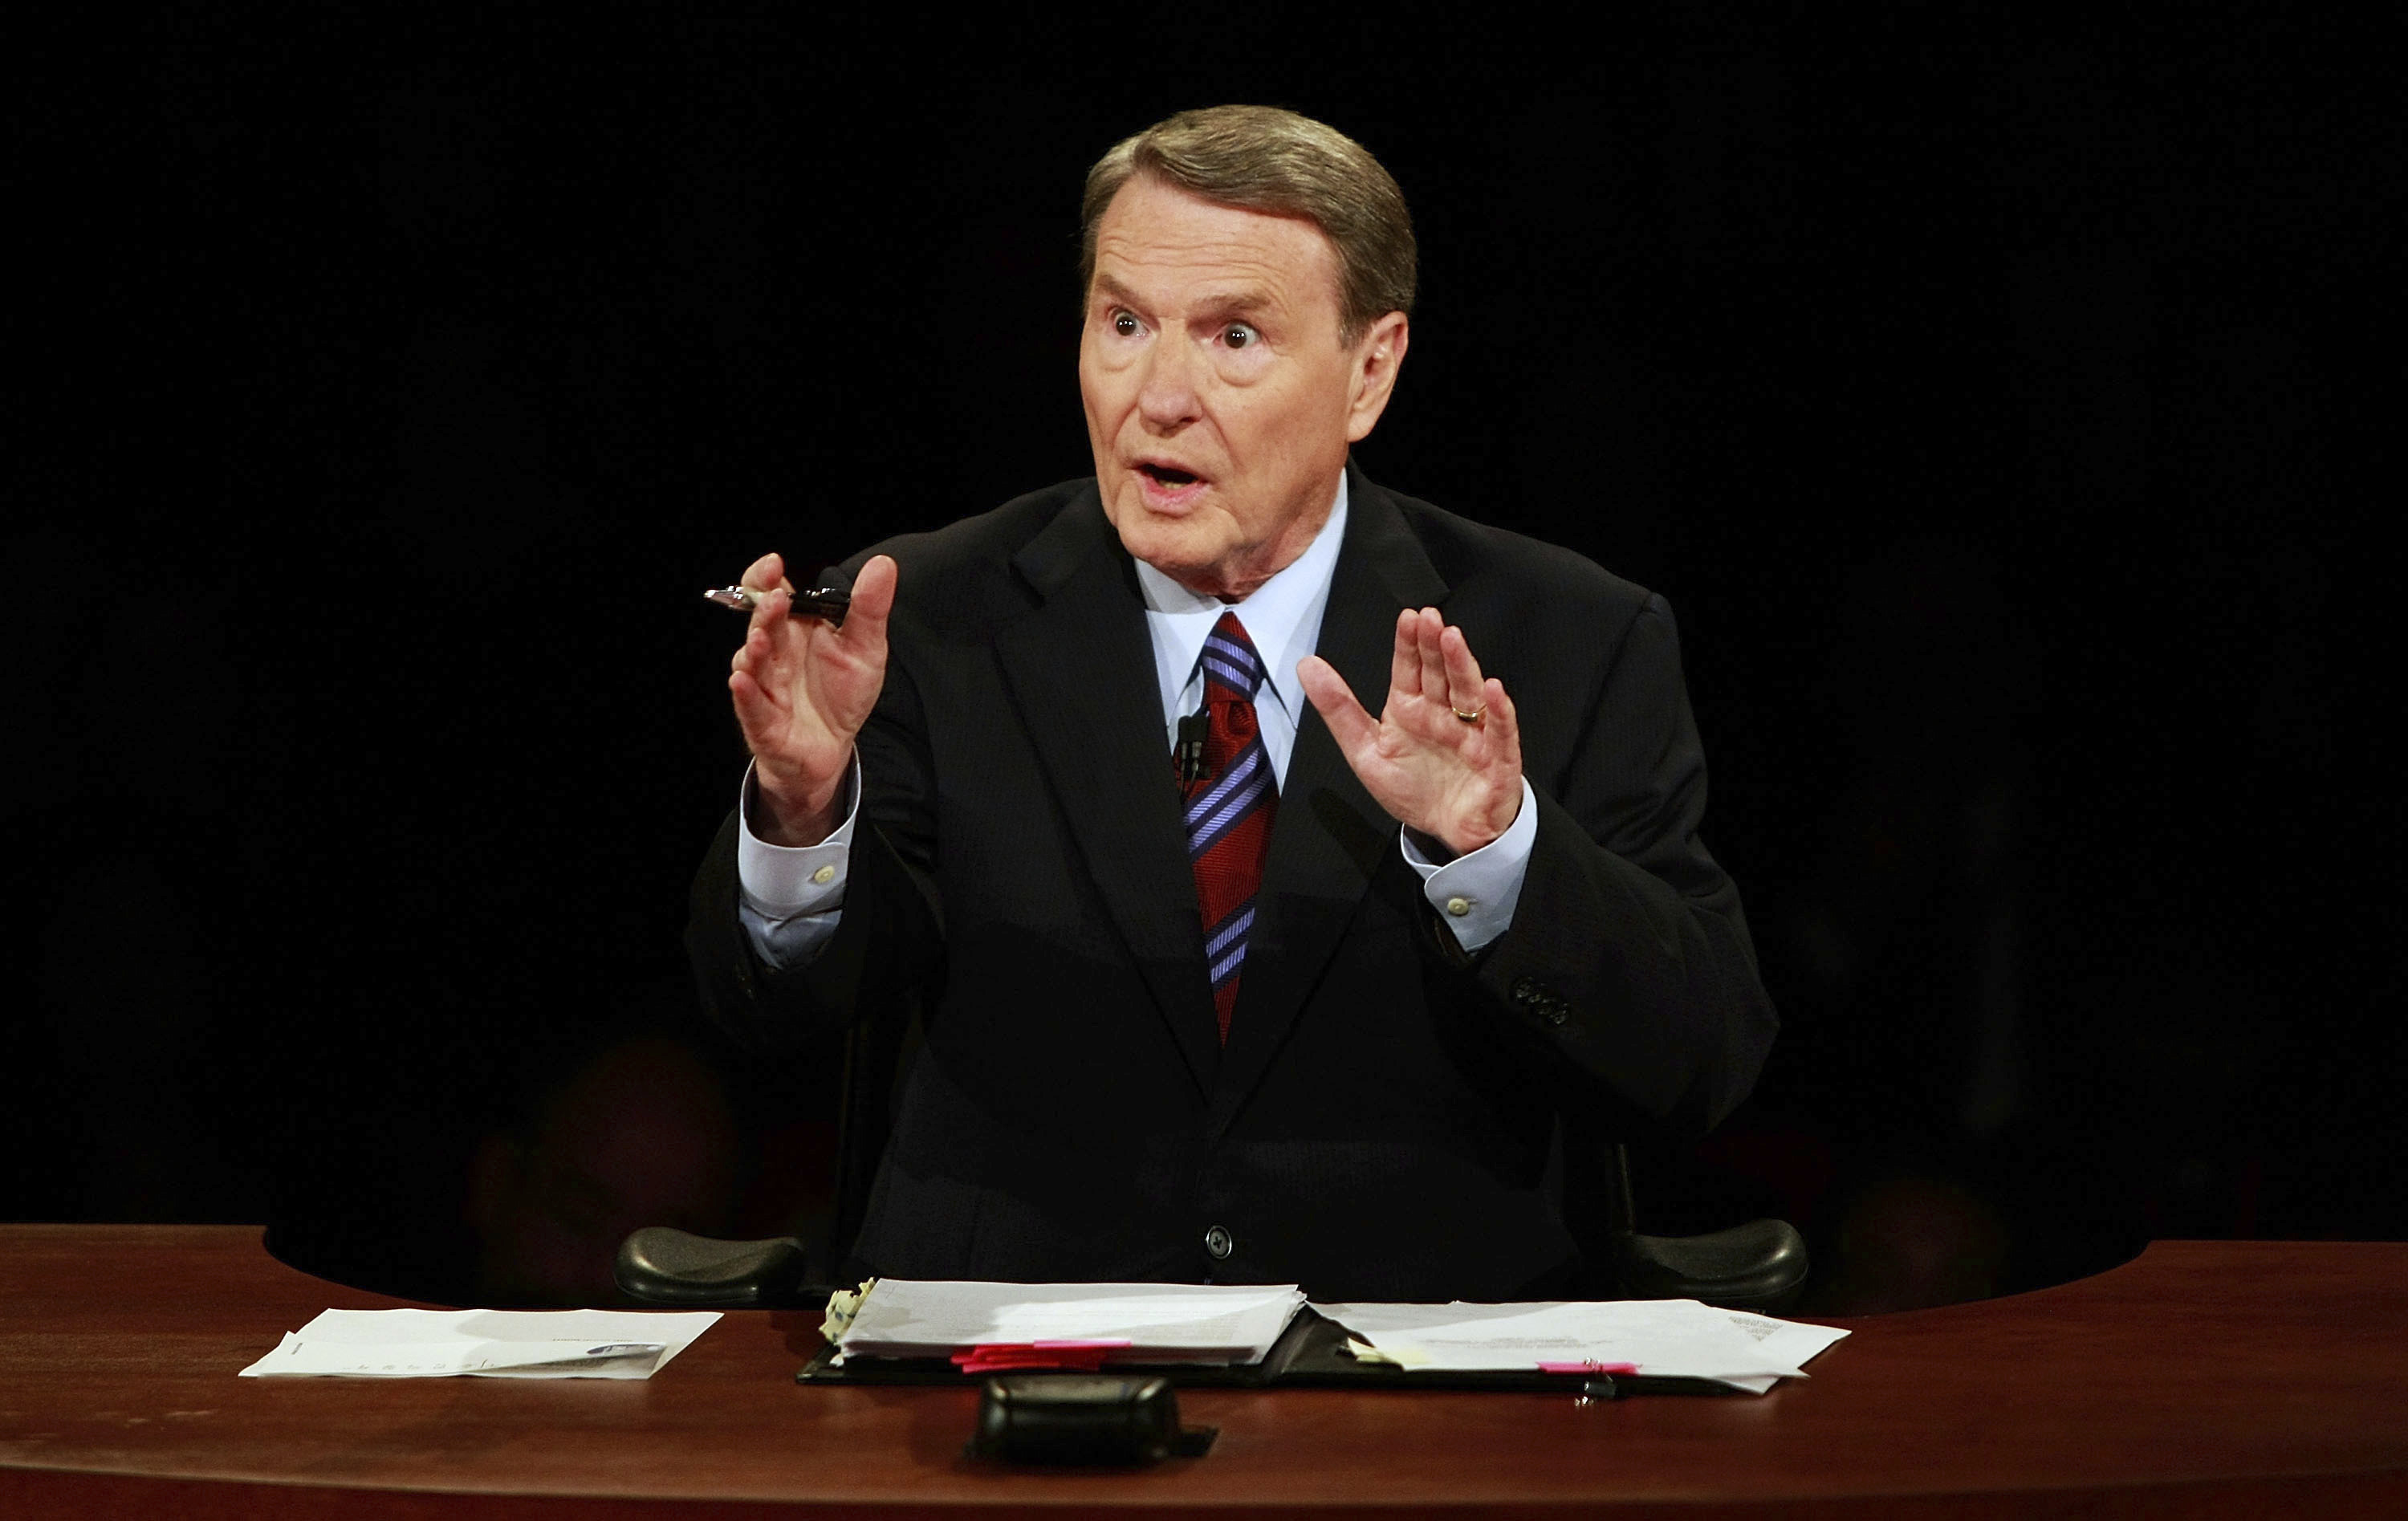 This Sept. 26, 2008 file photo shows debate moderator Jim Lehrer during the first U.S. Presidential Debate between presidential nominees Sen. John McCain, R-Ariz., and Sen. Barack Obama, D-Ill., at the University of Mississippi in Oxford, Miss.